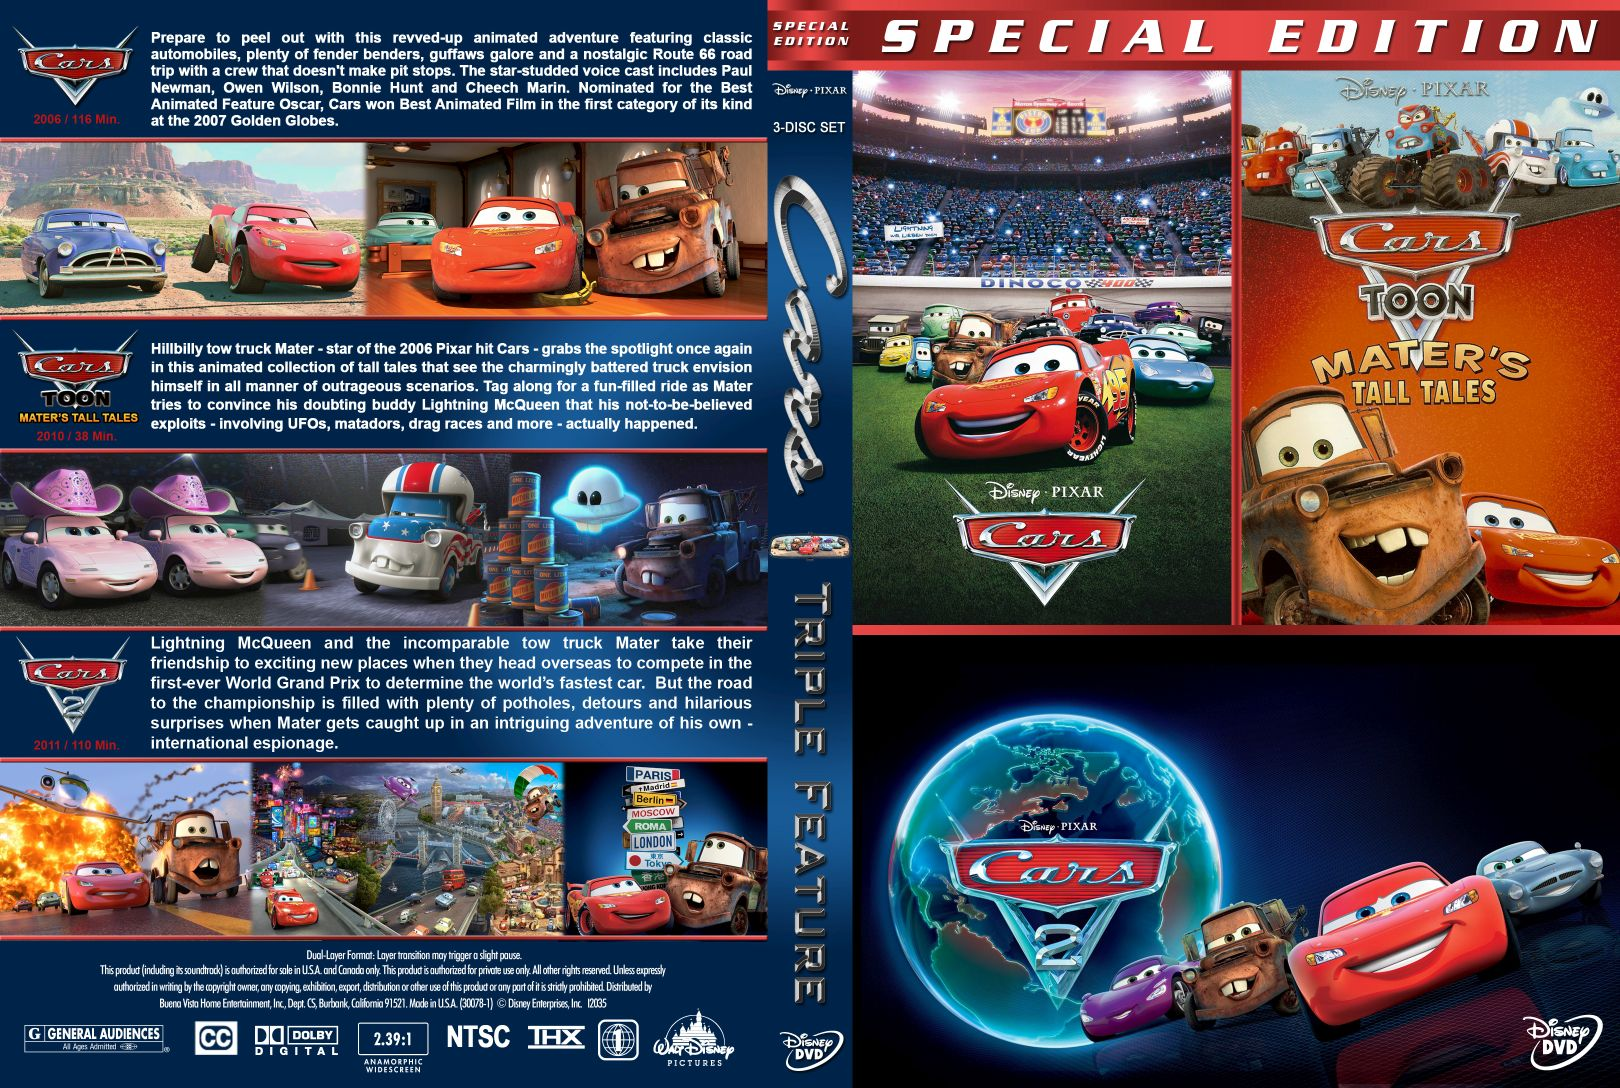 Cars Triple Dvd Covers Cover Century Over 500 000 Album Art